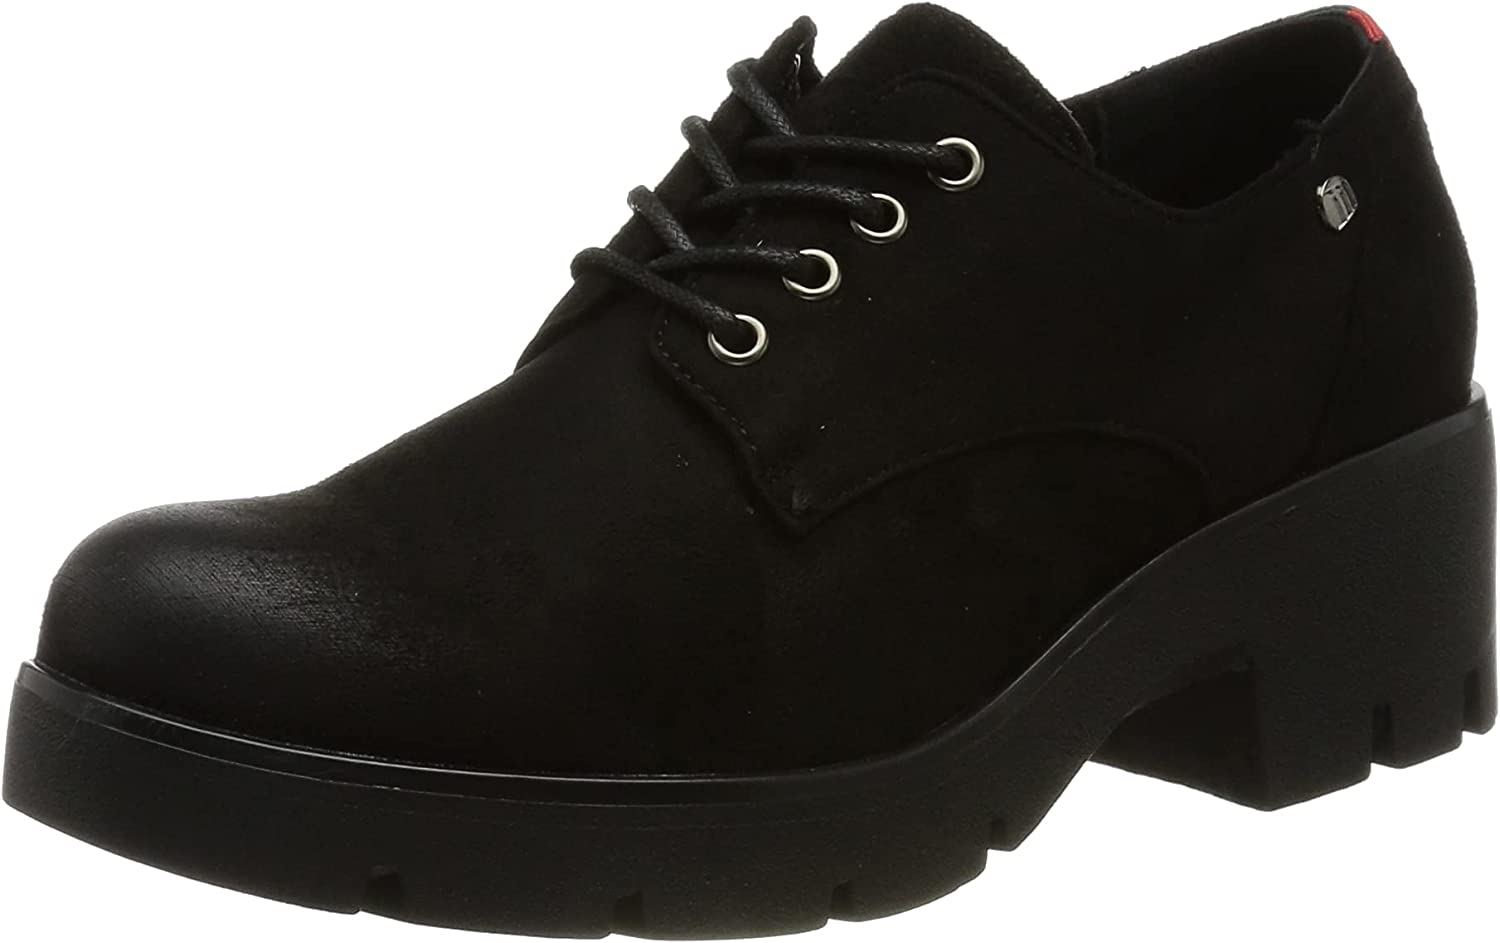 MTNG Women's Oxford 限定特価 Lace-up アウトレットセール 特集